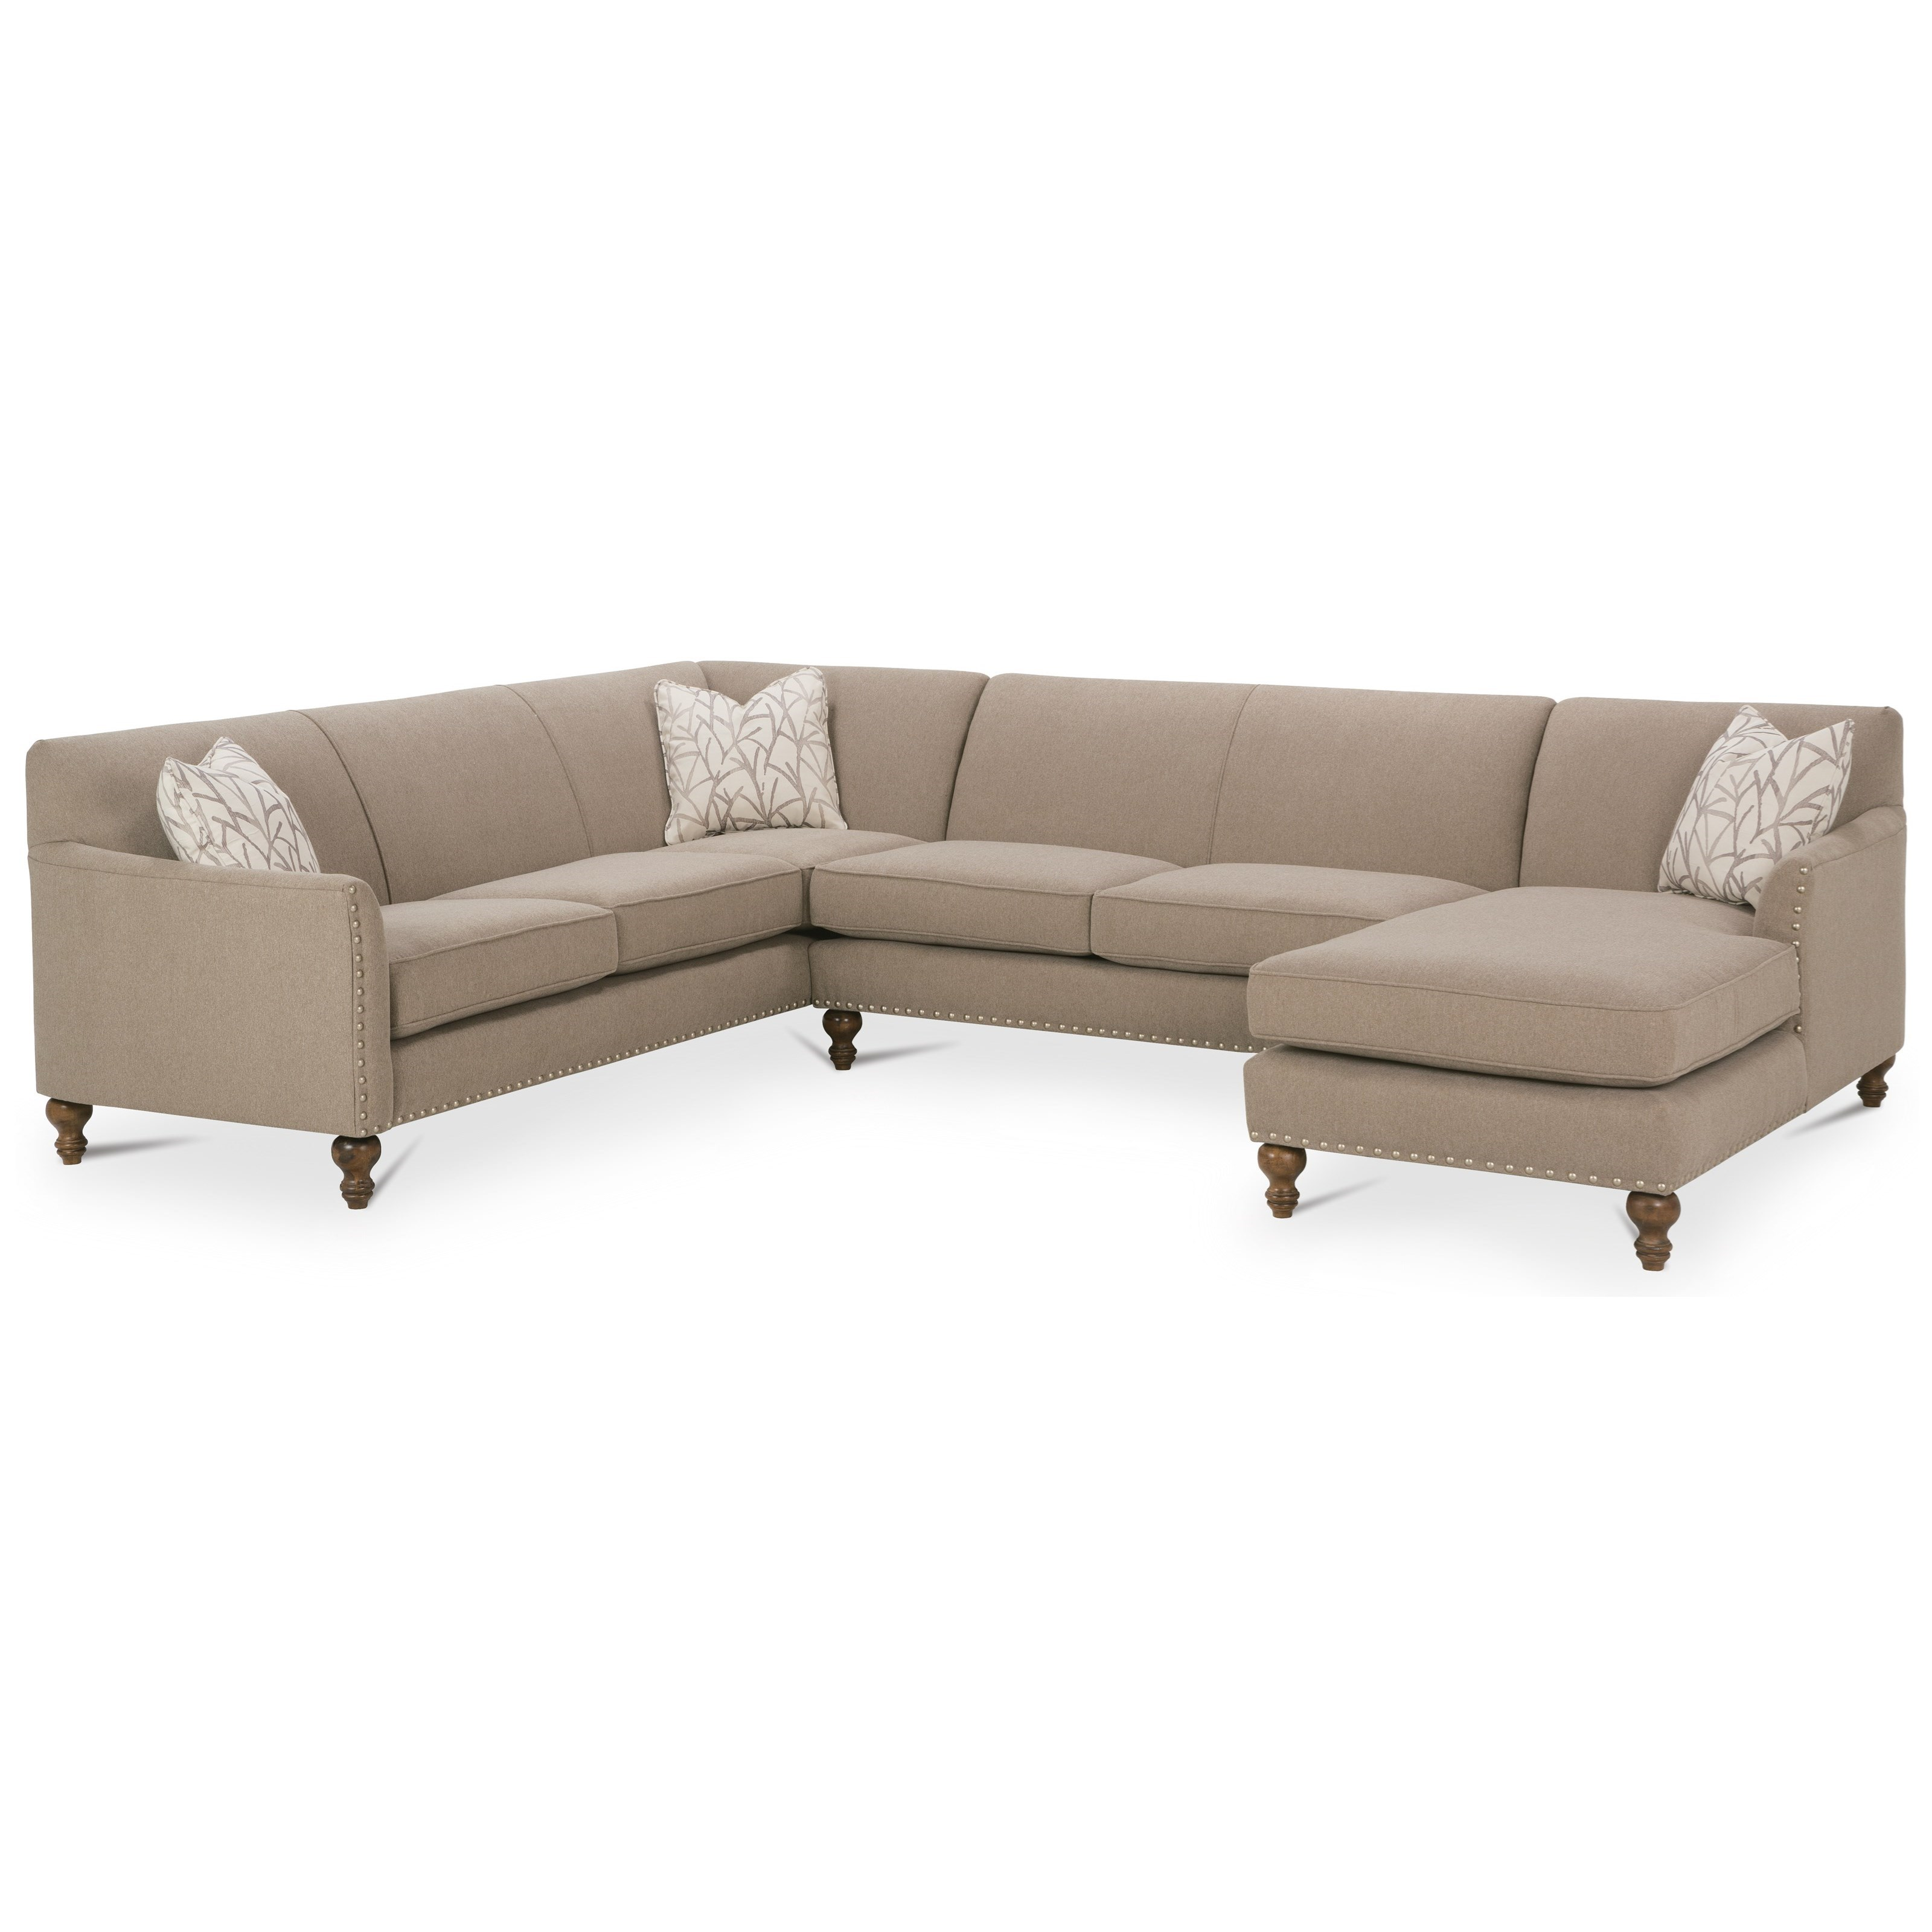 Rowe varick rxo customizable 3 piece sectional sofa w laf for 3 pc sectional sofa with chaise